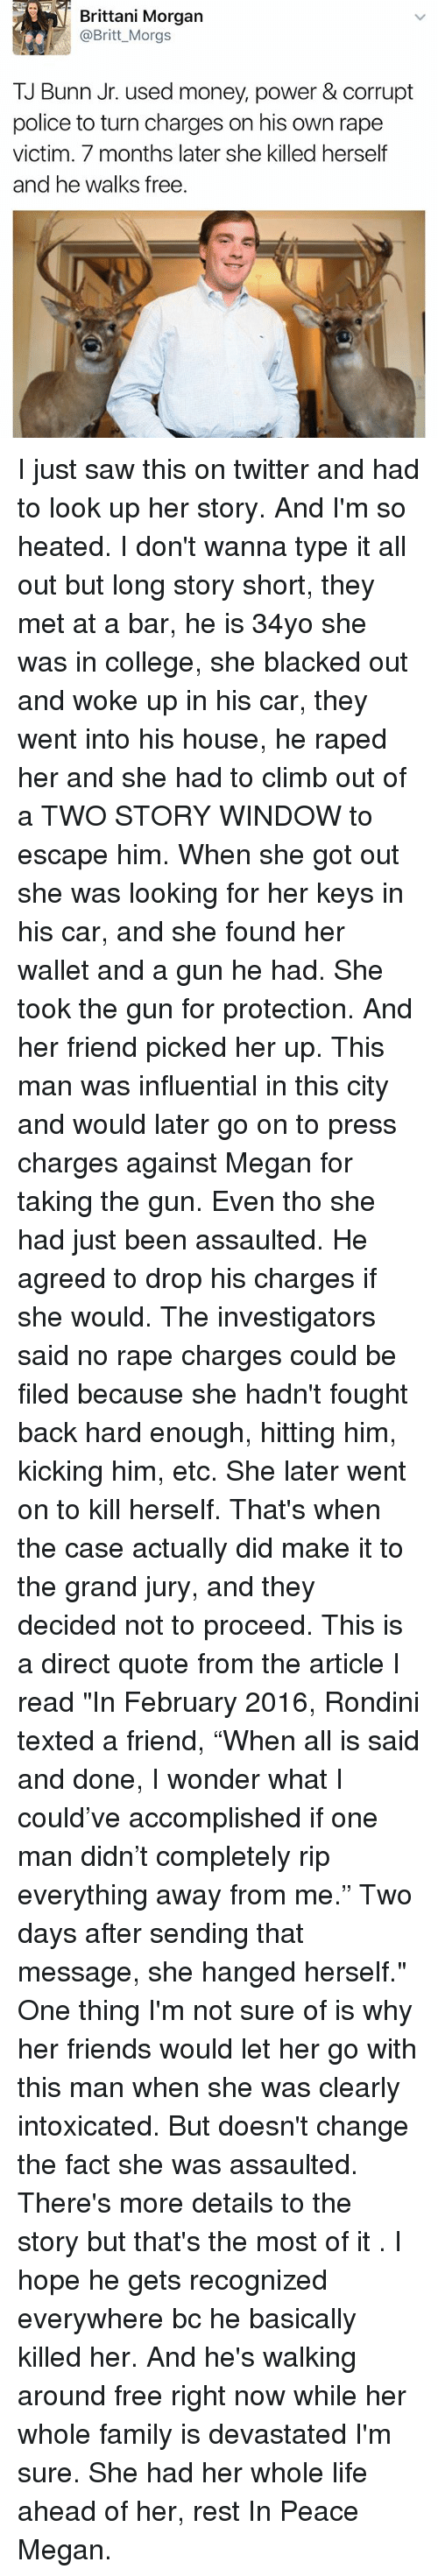 """College, Family, and Friends: Brittani Morgan  @Britt_Morgs  TJ Bunn Jr. used money, power & corrupt  police to turn charges on his own rape  victim. 7 months later she killed herself  and he walks free. I just saw this on twitter and had to look up her story. And I'm so heated. I don't wanna type it all out but long story short, they met at a bar, he is 34yo she was in college, she blacked out and woke up in his car, they went into his house, he raped her and she had to climb out of a TWO STORY WINDOW to escape him. When she got out she was looking for her keys in his car, and she found her wallet and a gun he had. She took the gun for protection. And her friend picked her up. This man was influential in this city and would later go on to press charges against Megan for taking the gun. Even tho she had just been assaulted. He agreed to drop his charges if she would. The investigators said no rape charges could be filed because she hadn't fought back hard enough, hitting him, kicking him, etc. She later went on to kill herself. That's when the case actually did make it to the grand jury, and they decided not to proceed. This is a direct quote from the article I read """"In February 2016, Rondini texted a friend, """"When all is said and done, I wonder what I could've accomplished if one man didn't completely rip everything away from me."""" Two days after sending that message, she hanged herself."""" One thing I'm not sure of is why her friends would let her go with this man when she was clearly intoxicated. But doesn't change the fact she was assaulted. There's more details to the story but that's the most of it . I hope he gets recognized everywhere bc he basically killed her. And he's walking around free right now while her whole family is devastated I'm sure. She had her whole life ahead of her, rest In Peace Megan."""